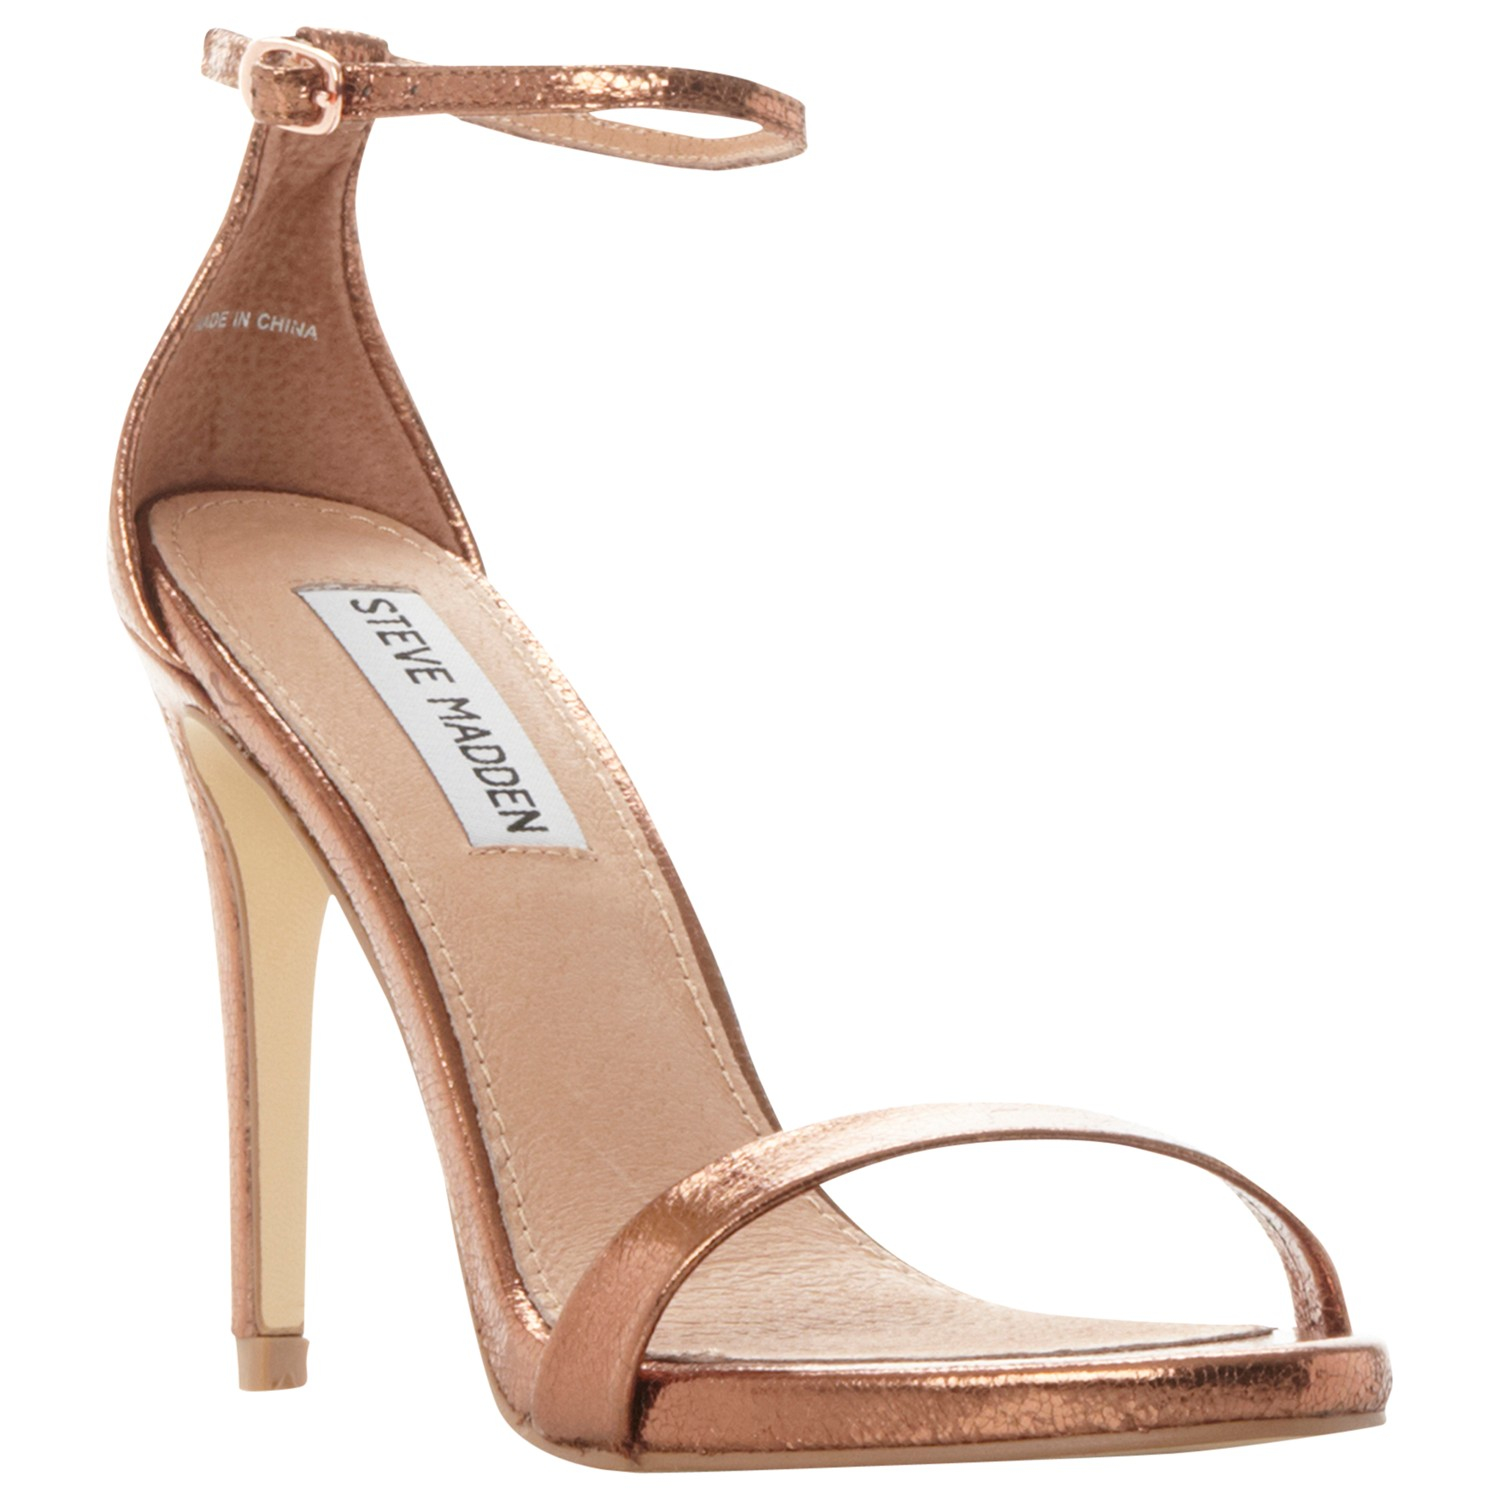 bc6dade29bf Steve Madden Stecy Stiletto Sandals in Natural - Lyst